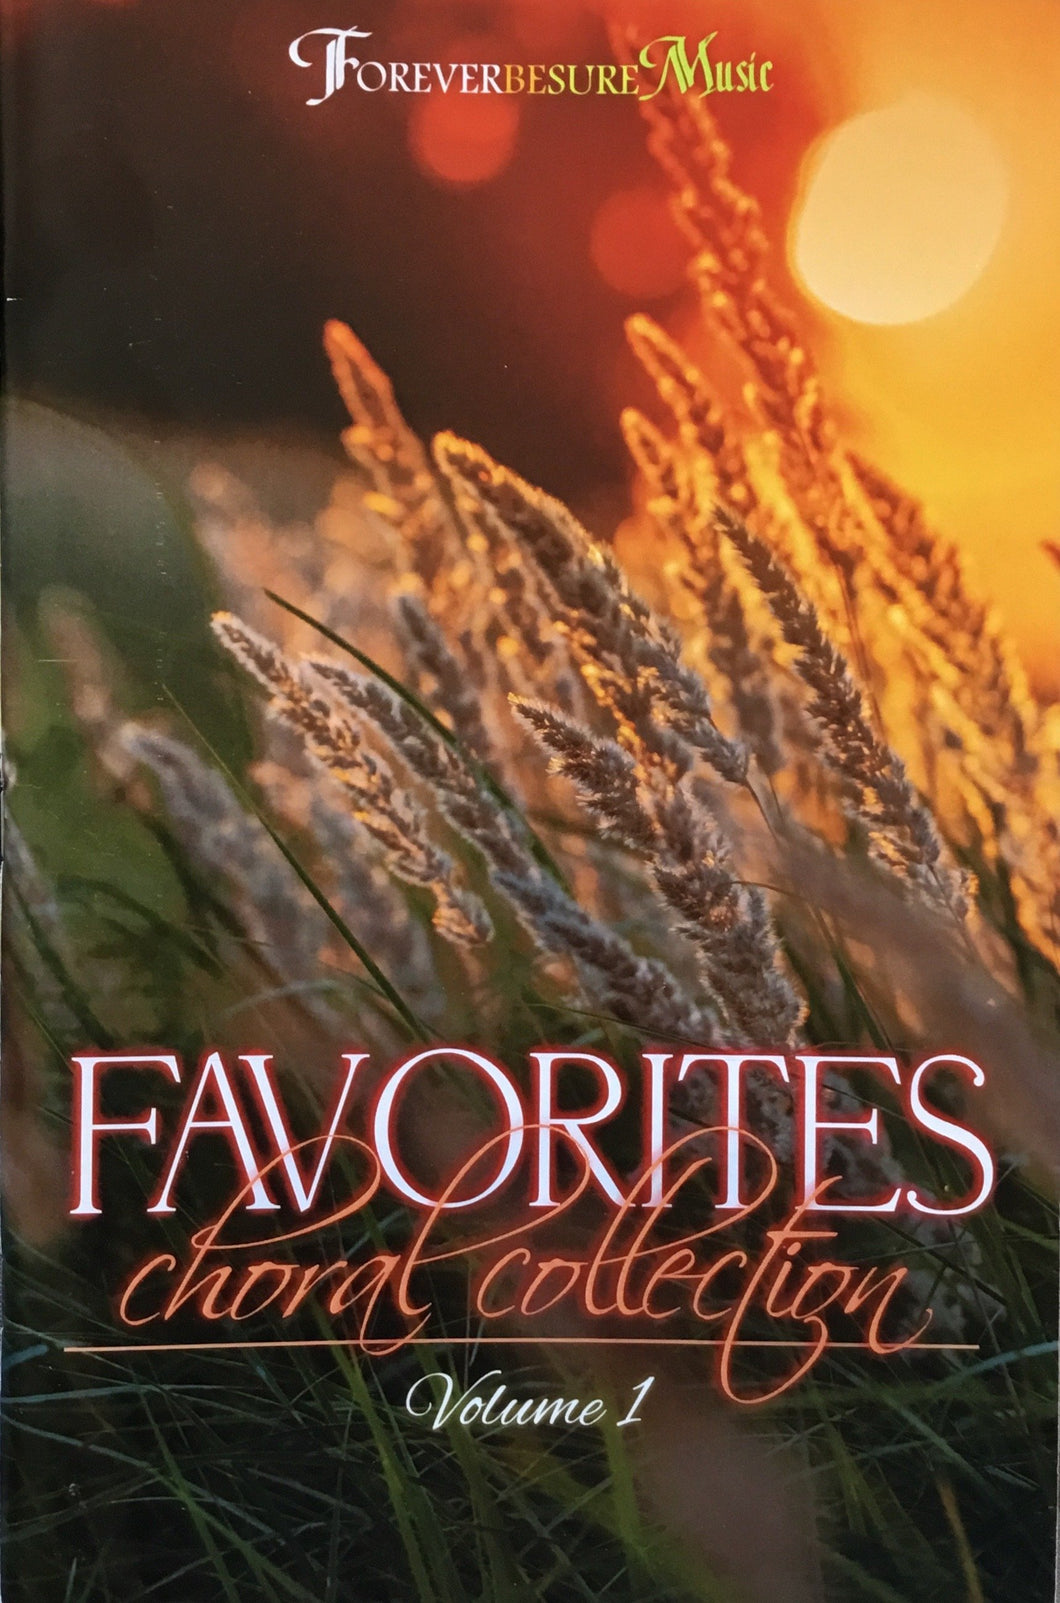 Favorites Choral Collection Vol. 1